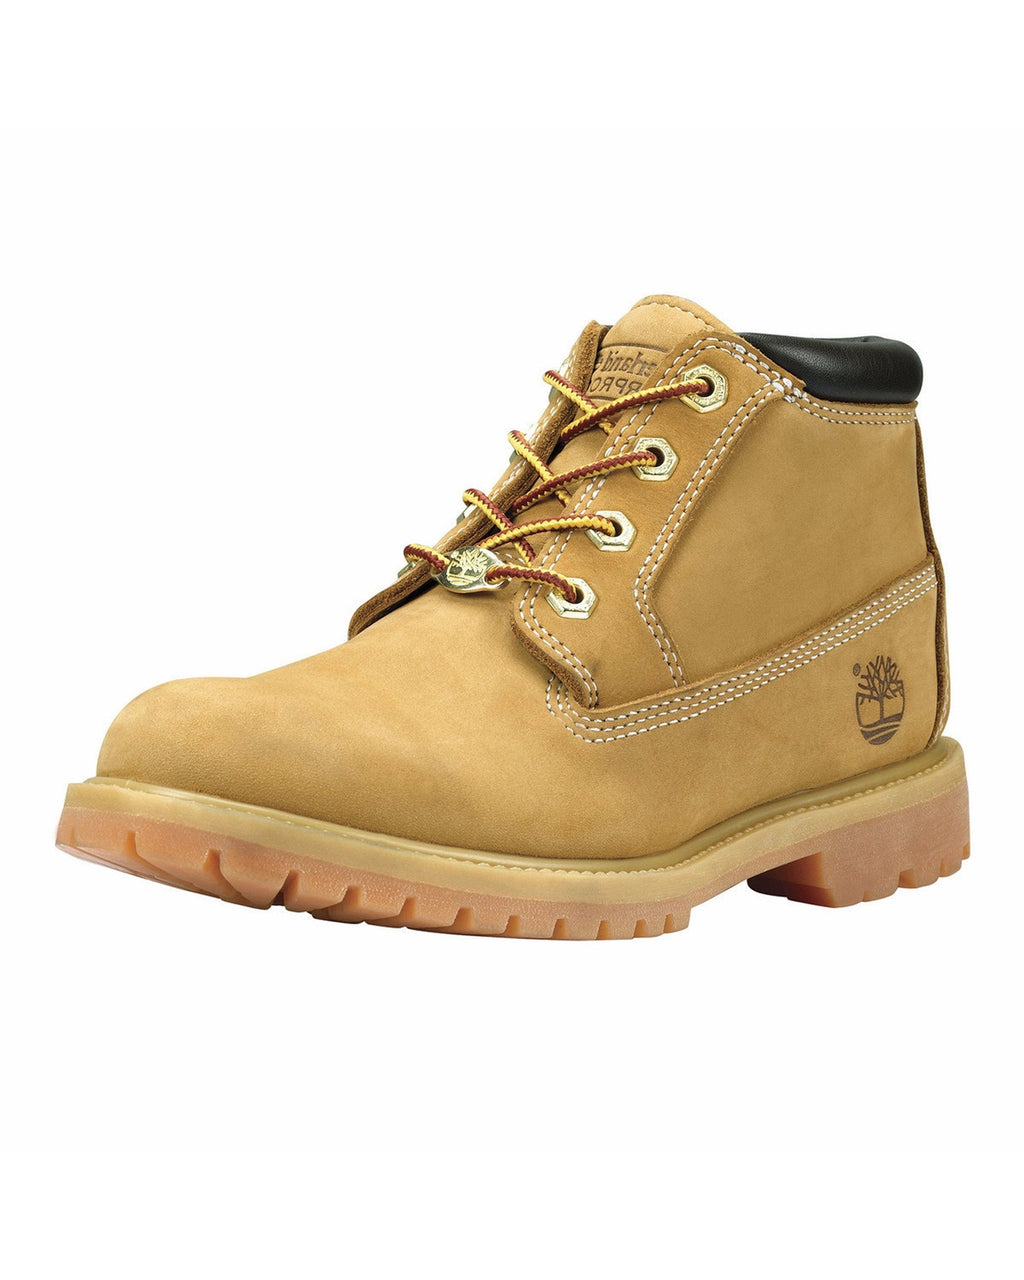 Timberland - Women's Nellie Waterproof Chukka Boot - Wheat Nubuck - V.I.M.